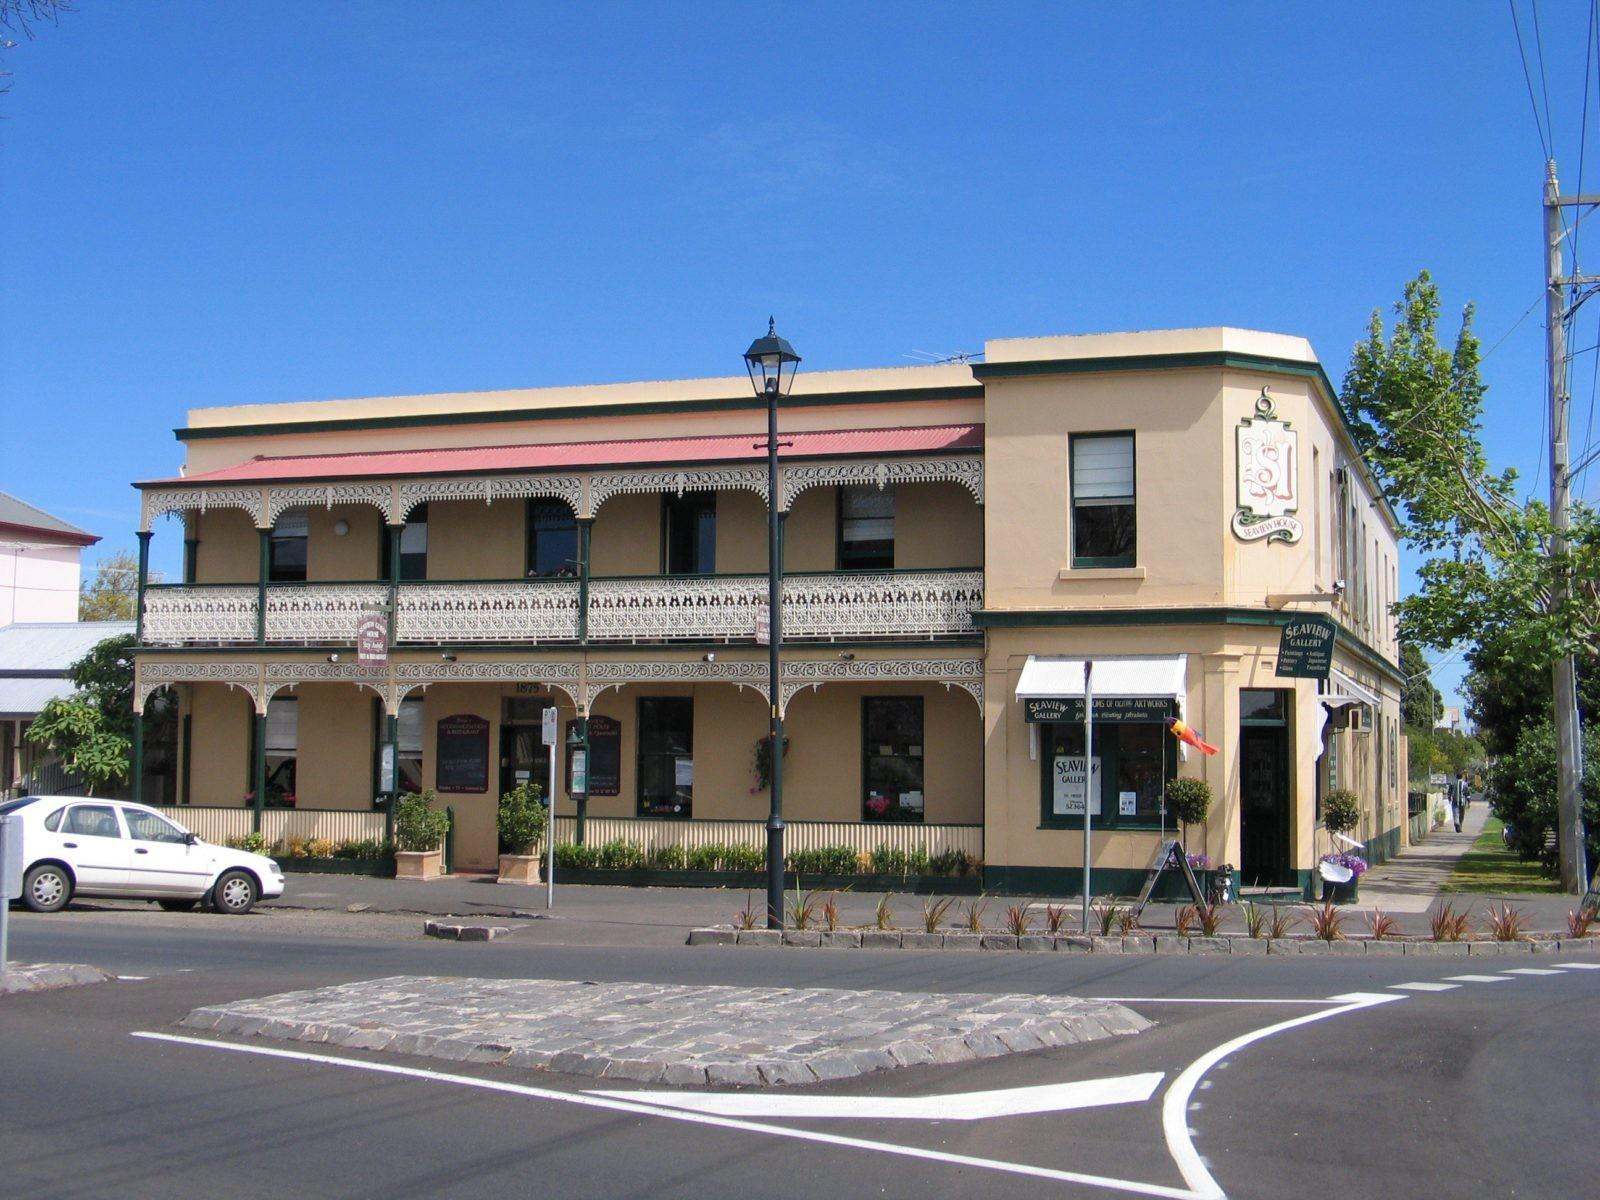 Seaview House Accommodation Queenscliff Victoria